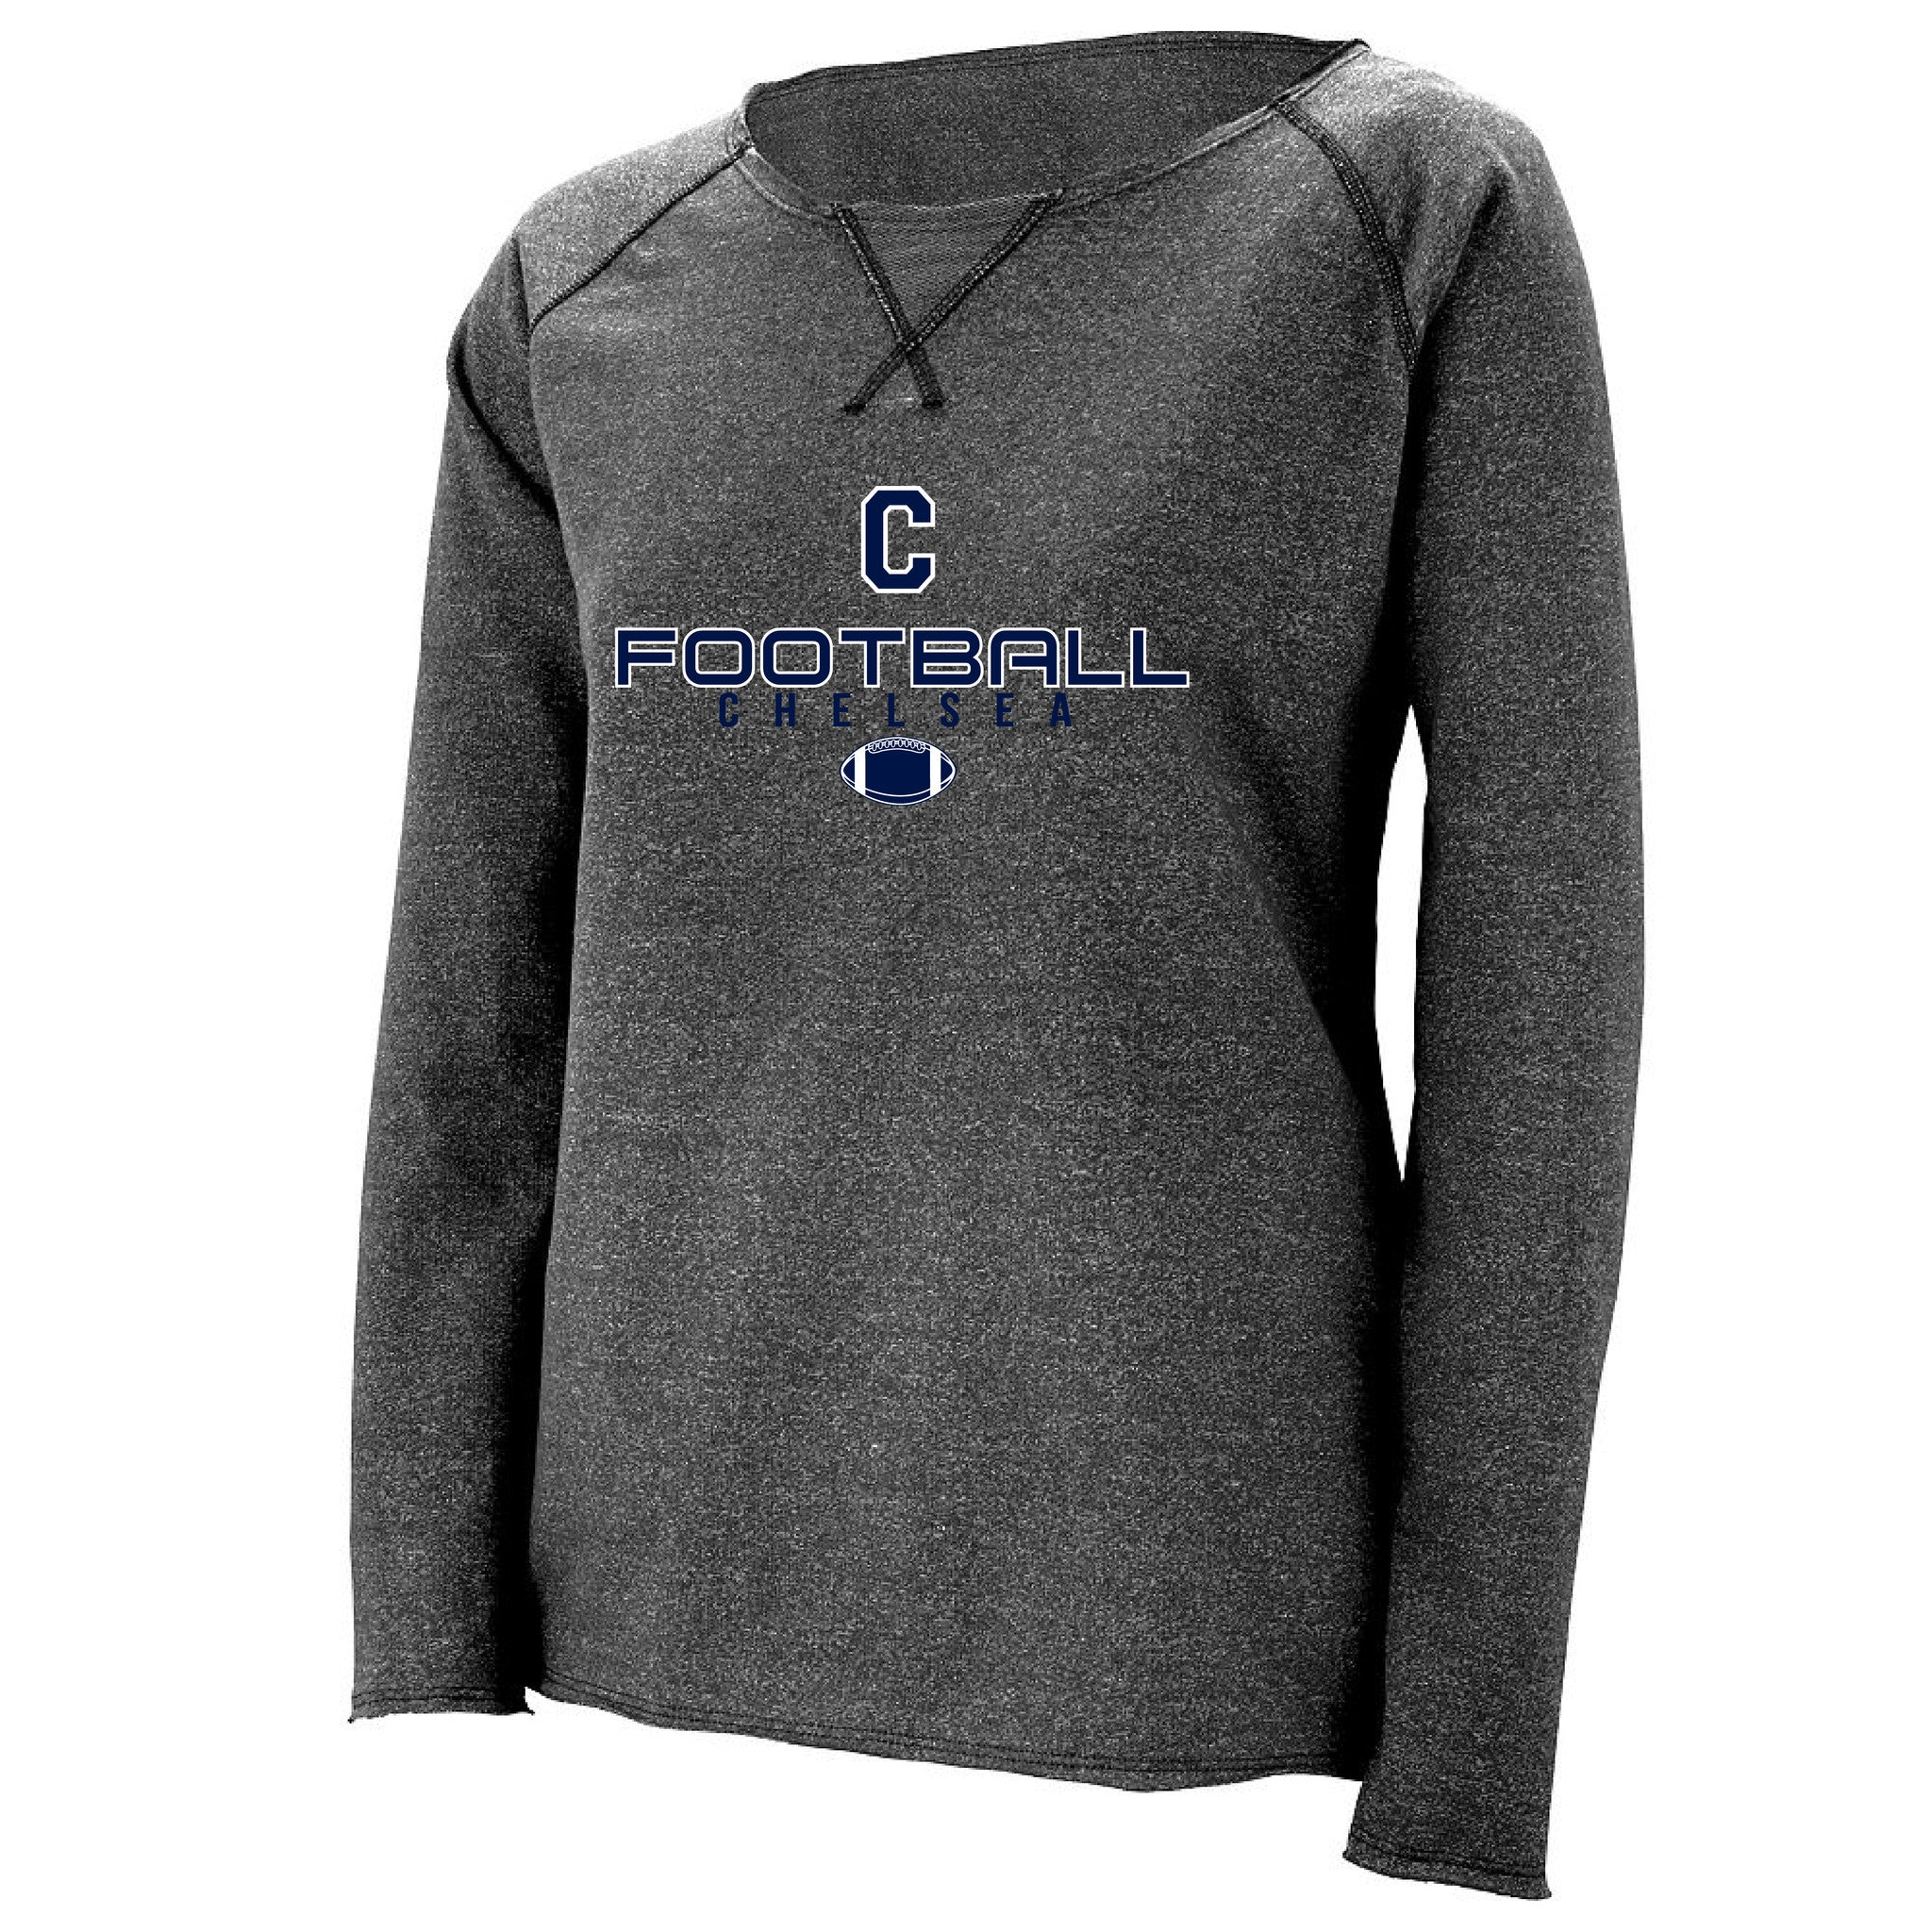 Ladies Chelsea Football French Terry Sweatshirt - Pick your Design